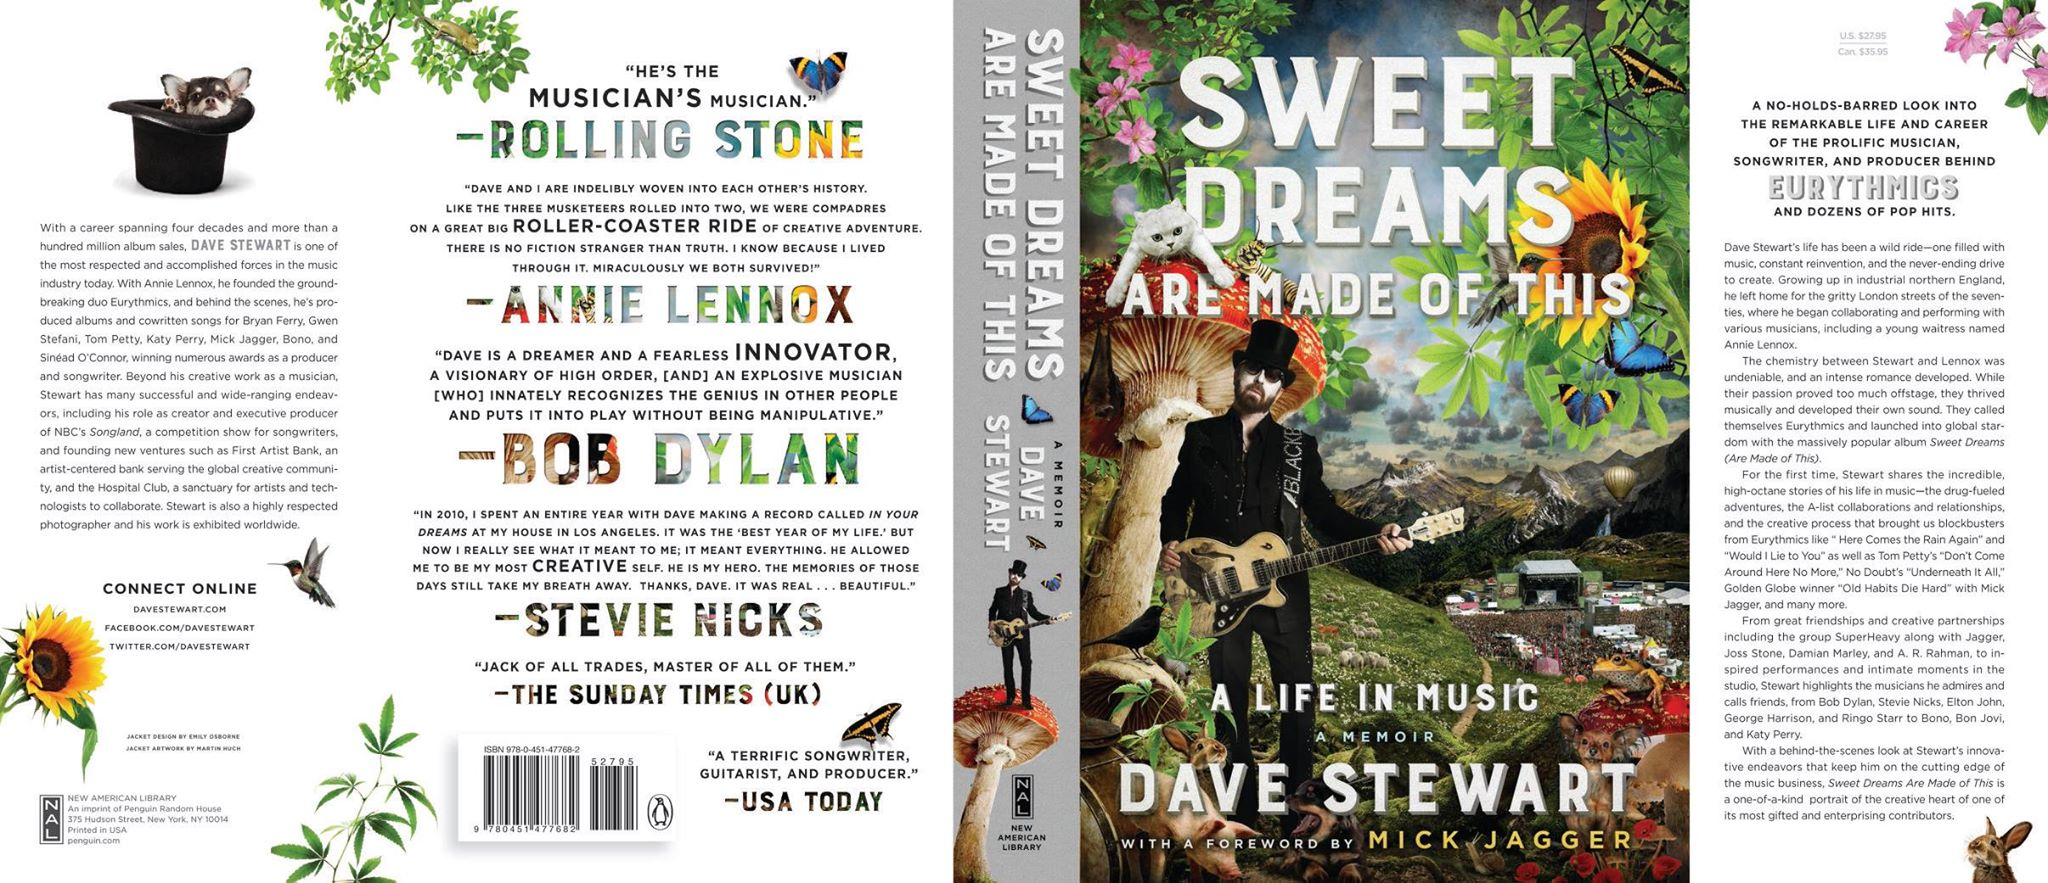 Dave Stewart announces 2 book signings in New York and Los Angeles